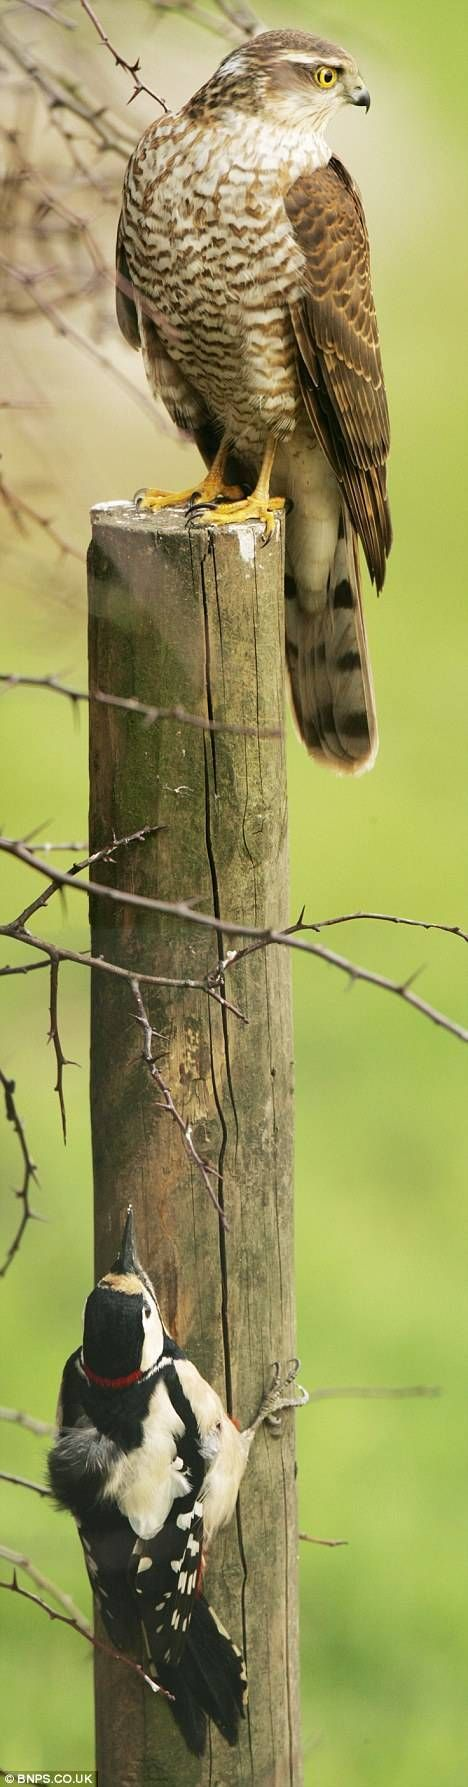 Now, where DID that woodpecker go? Bird plays hide and seek with sparrowhawk.